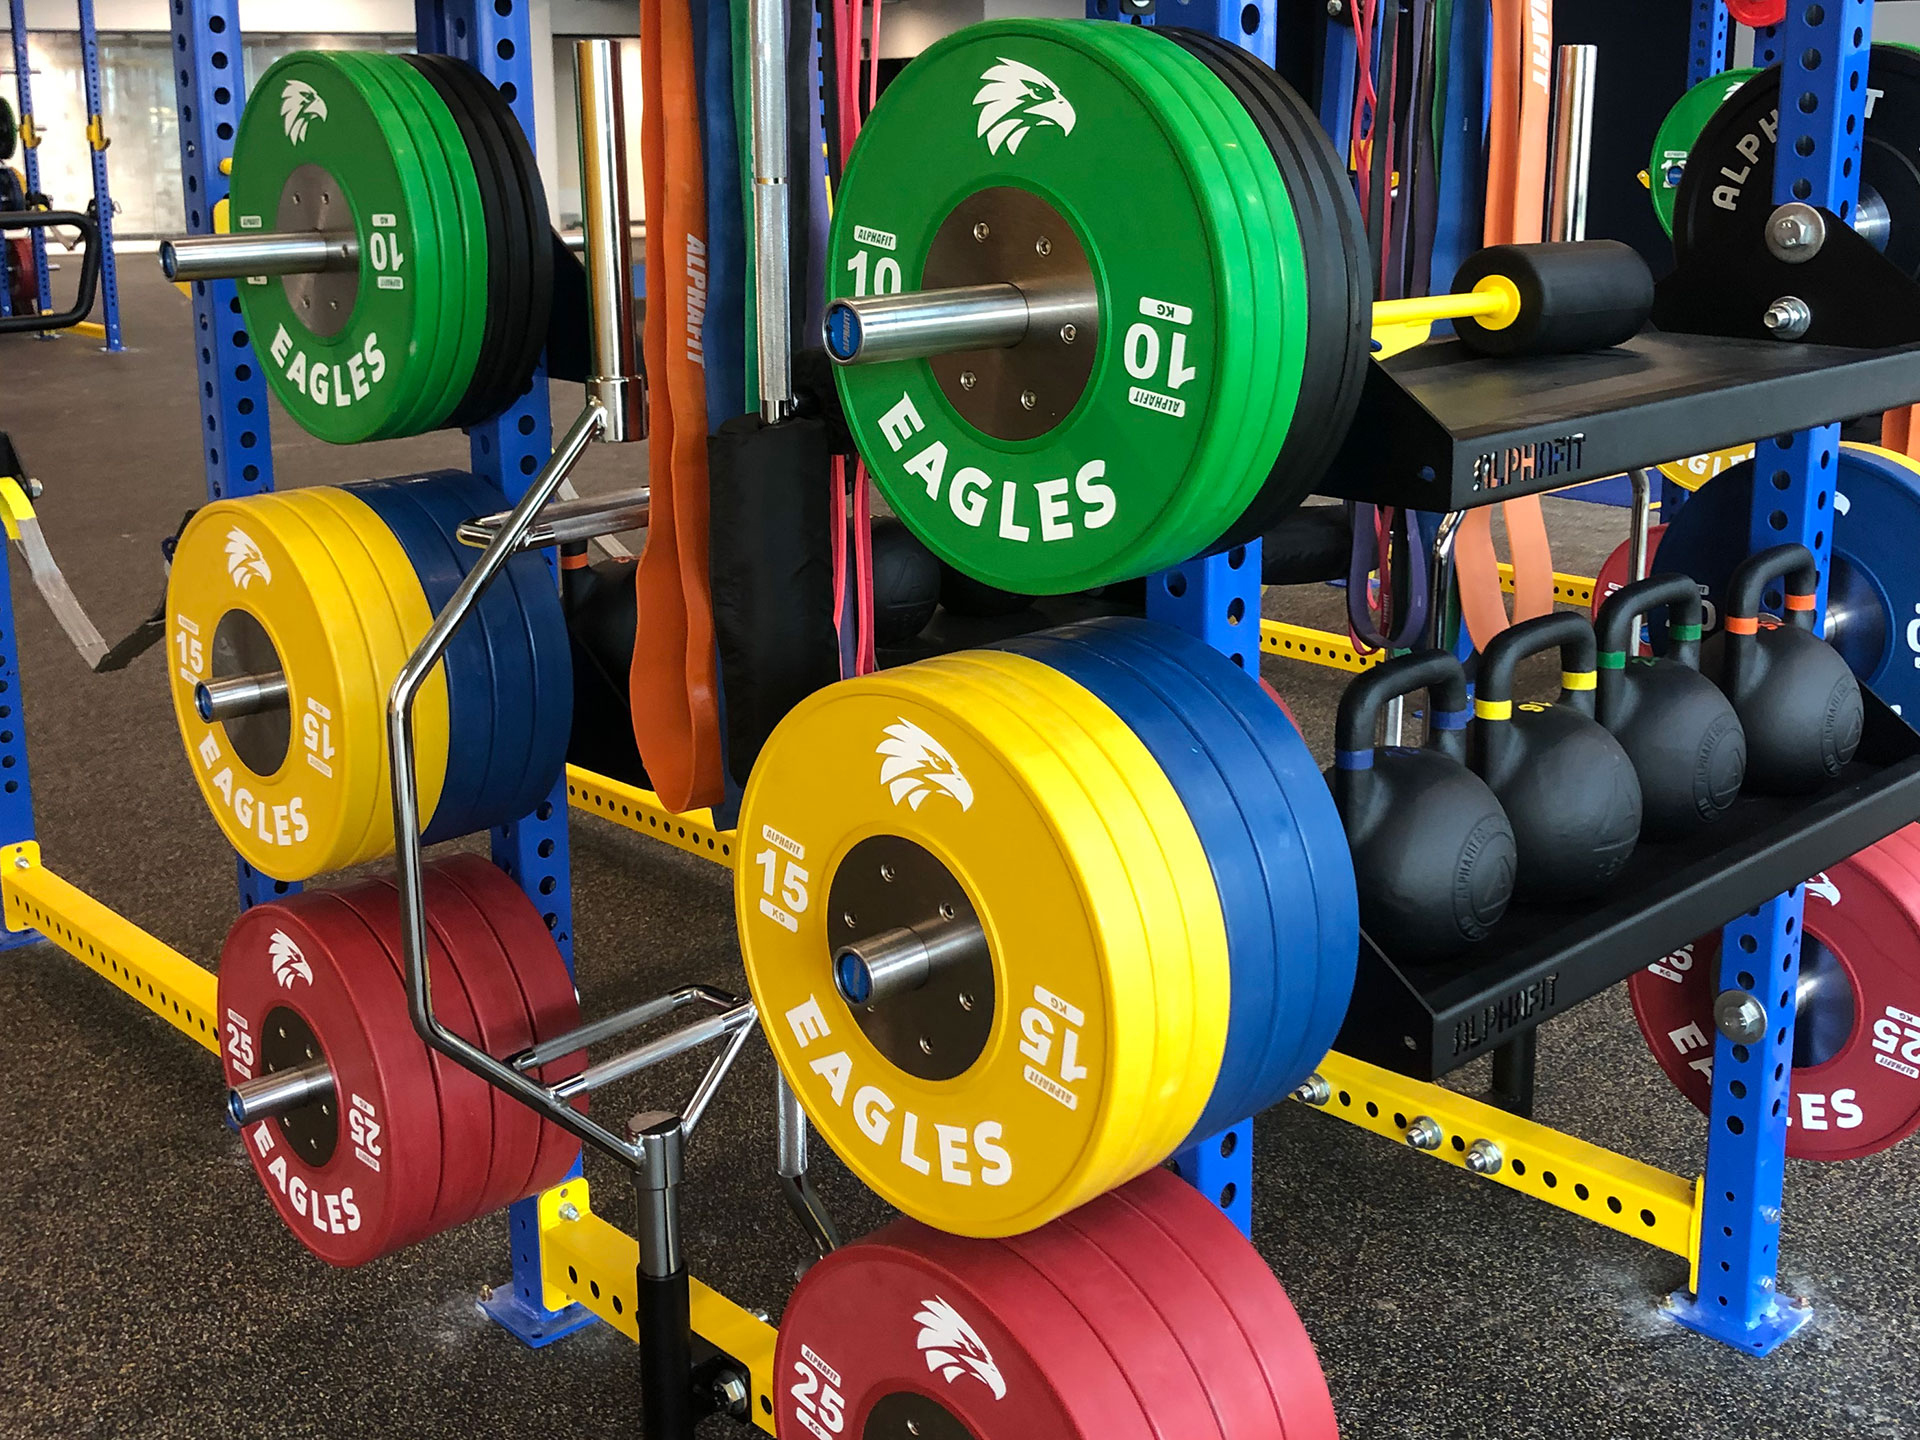 West Coast Eagles Gym Fitout